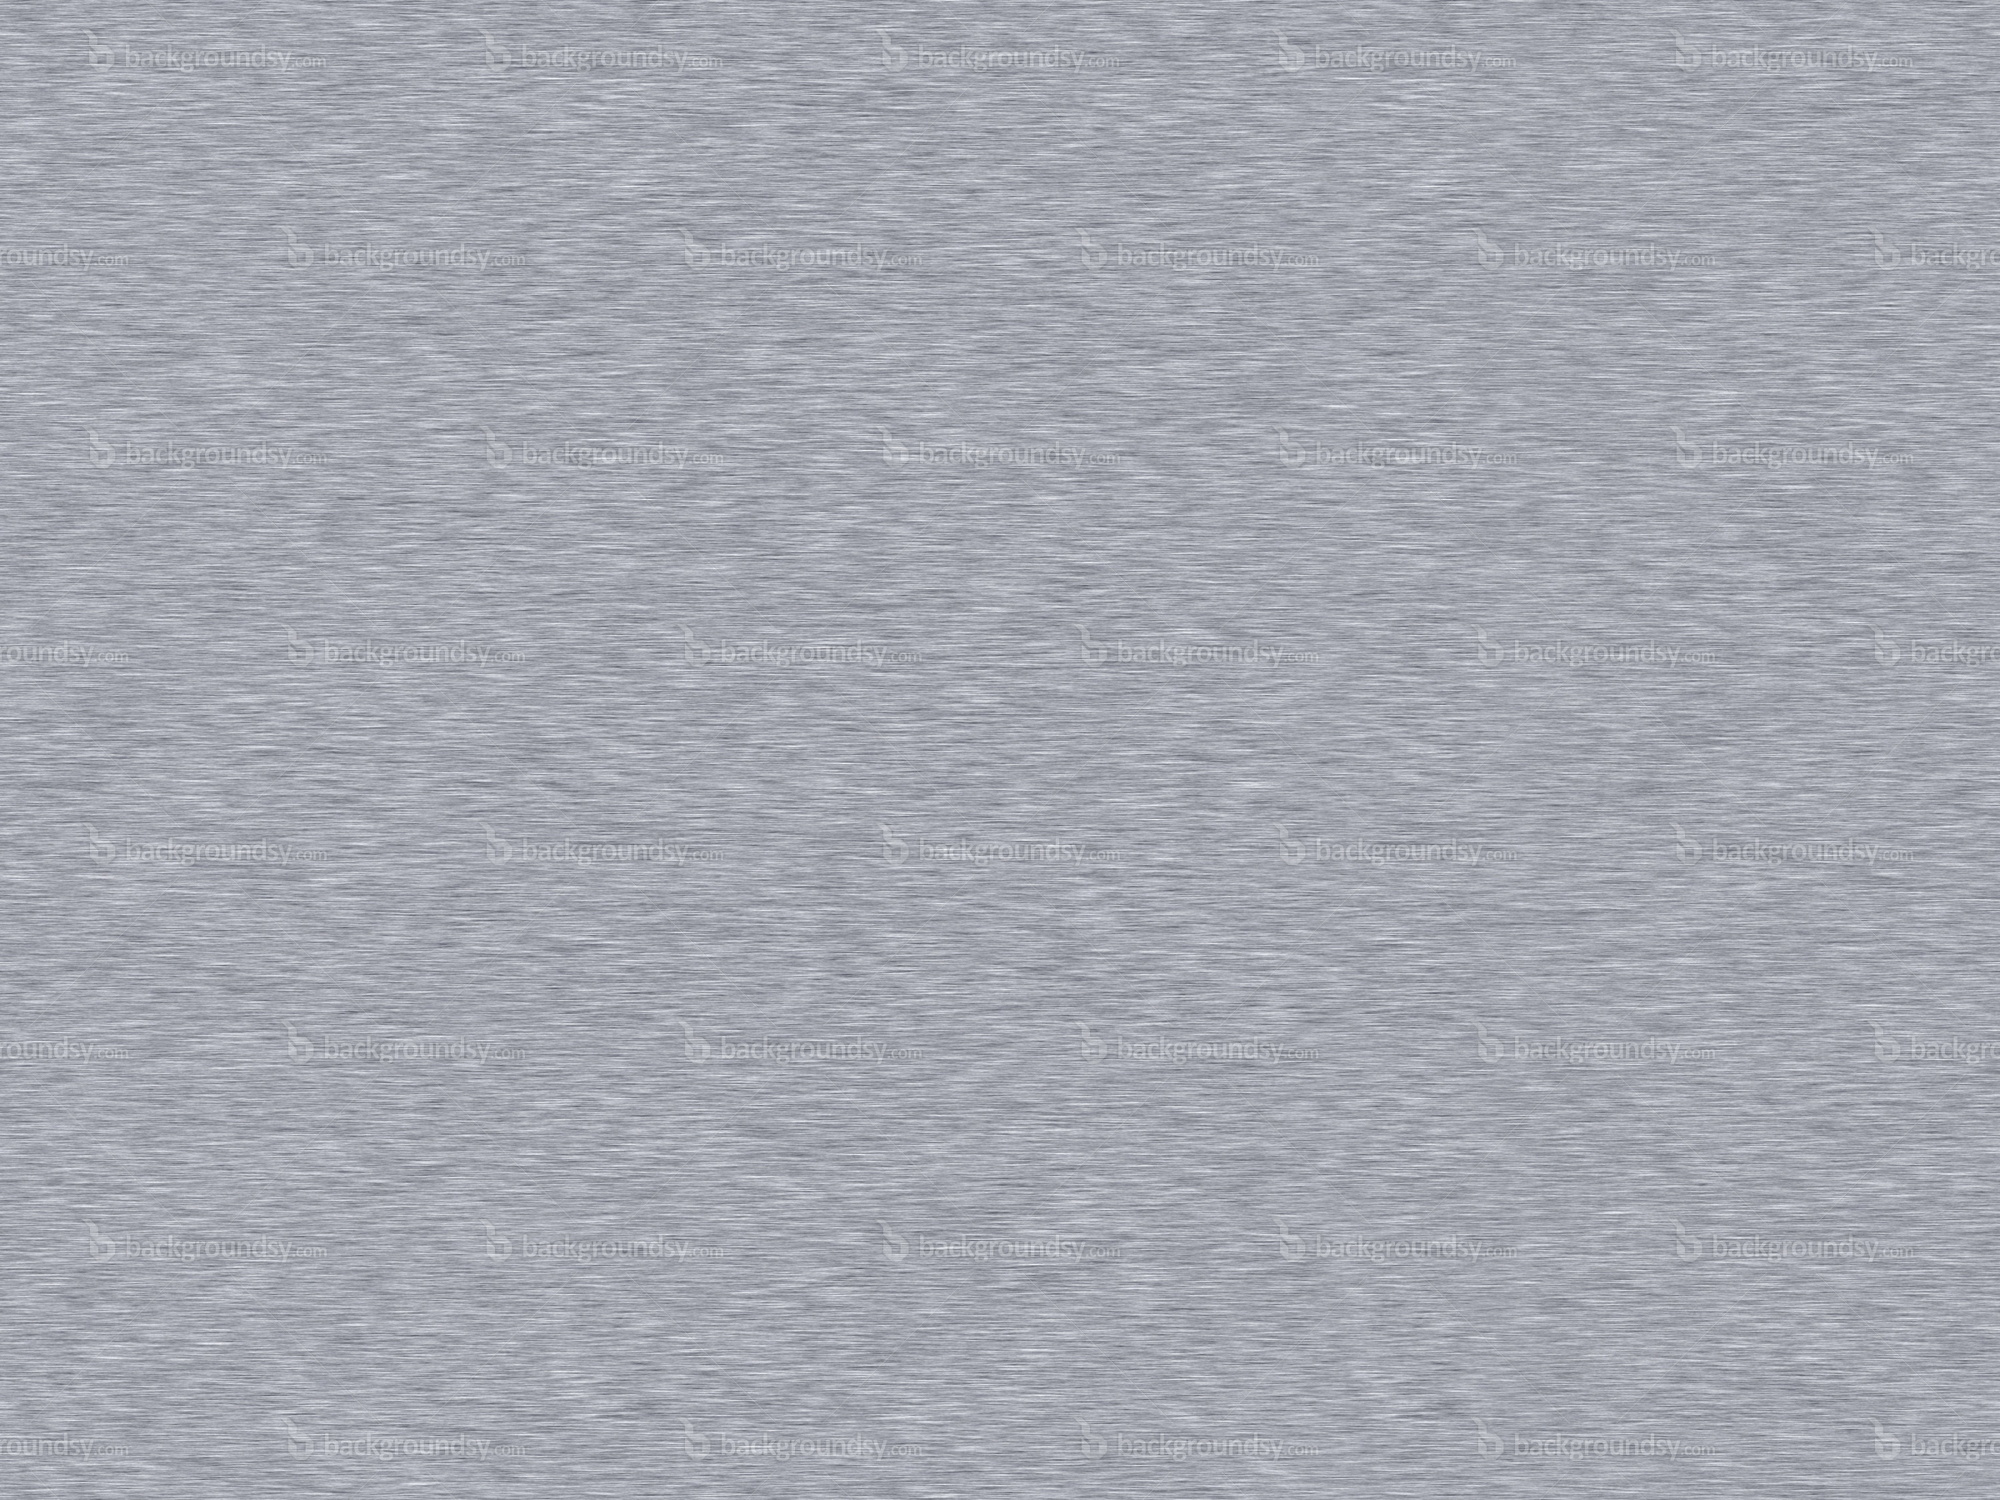 Seamless Metal Texture Backgroundsy Com